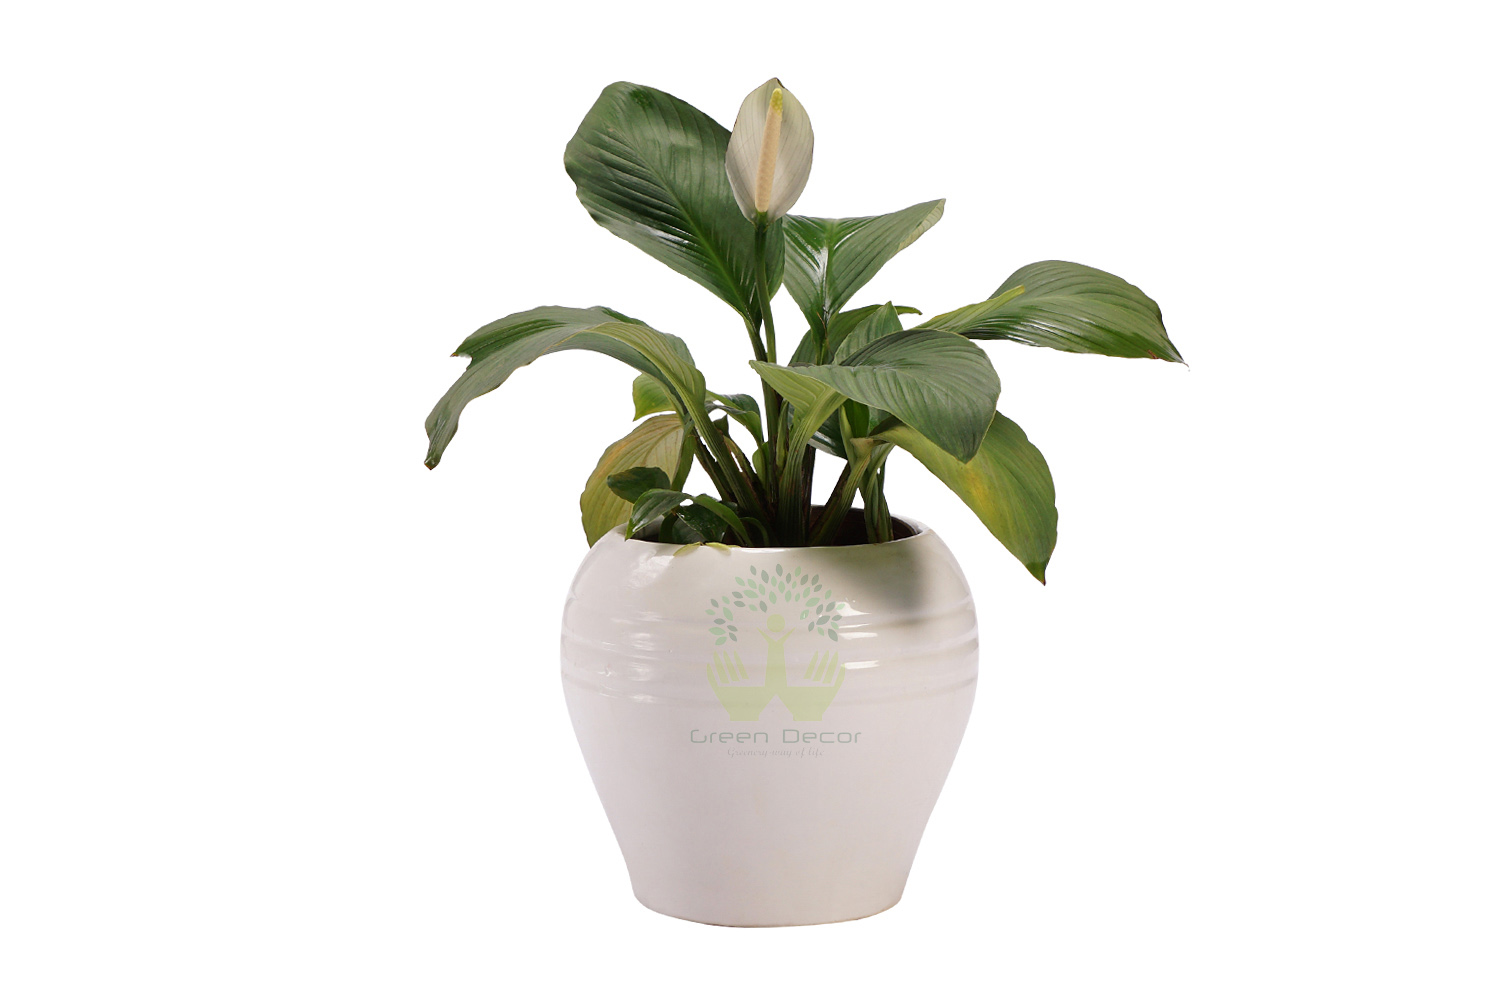 Buy peace lily online order for peace lily plants in delhi green buy peace lily plantspots and seeds in delhi ncr by the best online nursery izmirmasajfo